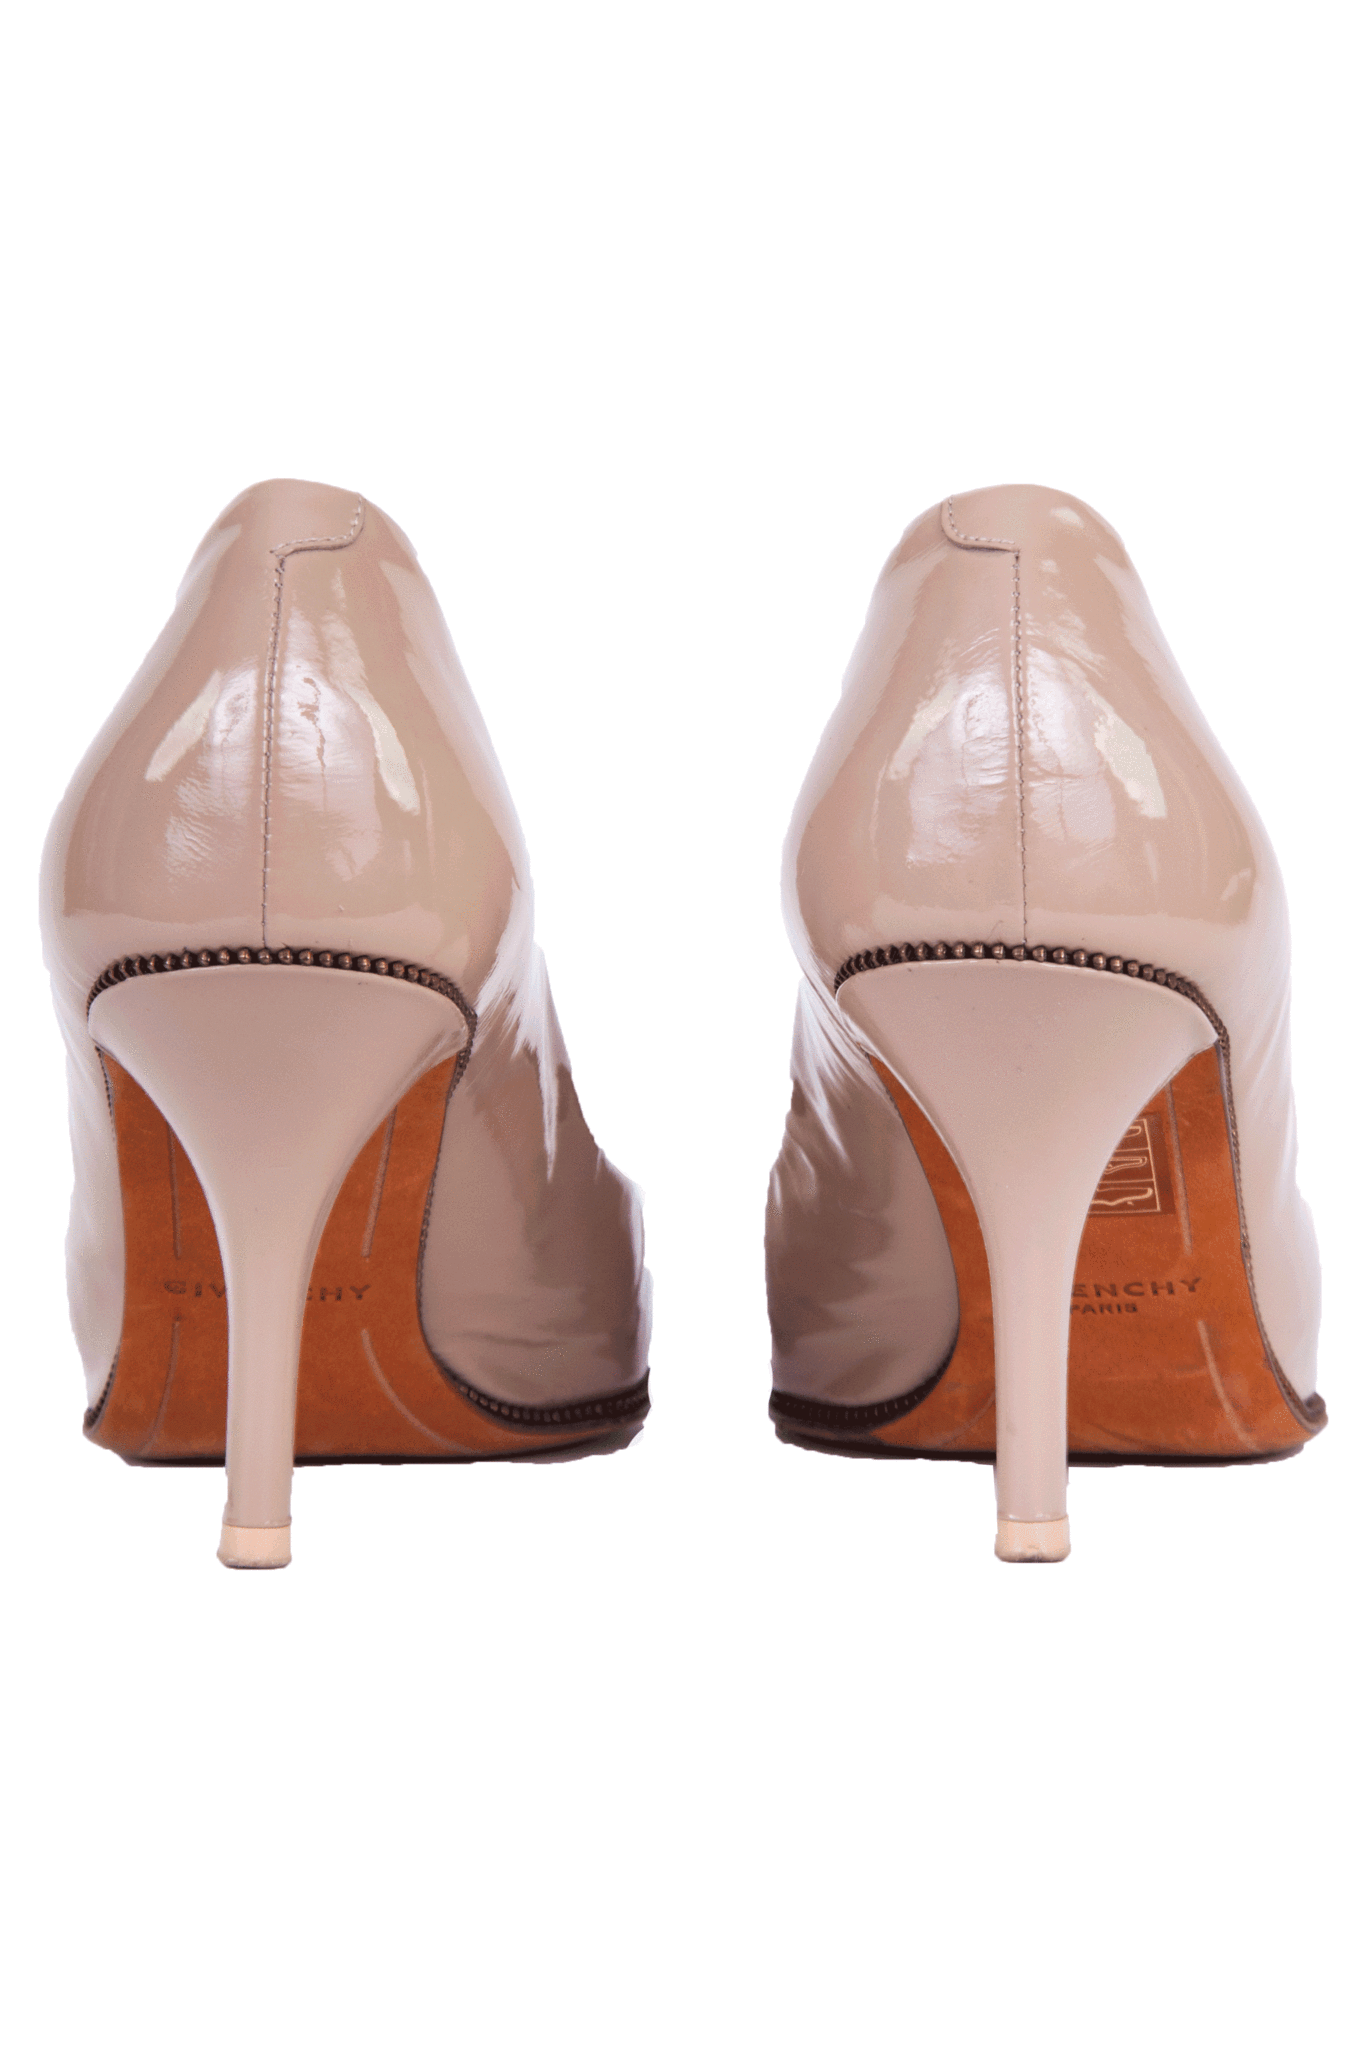 Givenchy high heels in blush pink